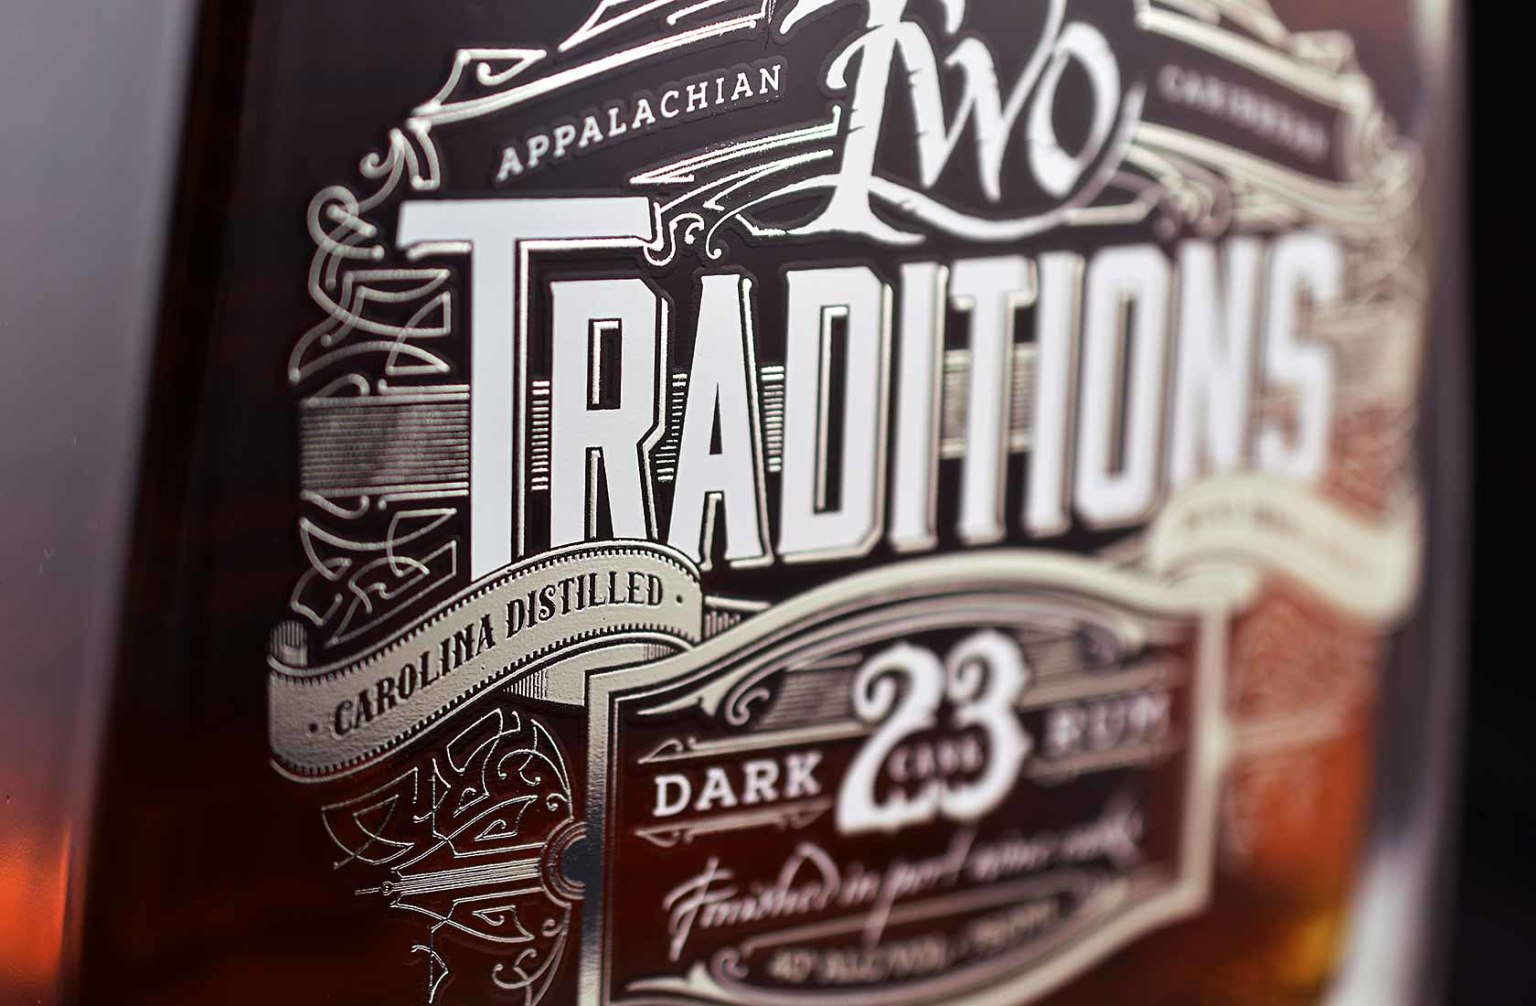 Two Traditions Dark 23 Rum